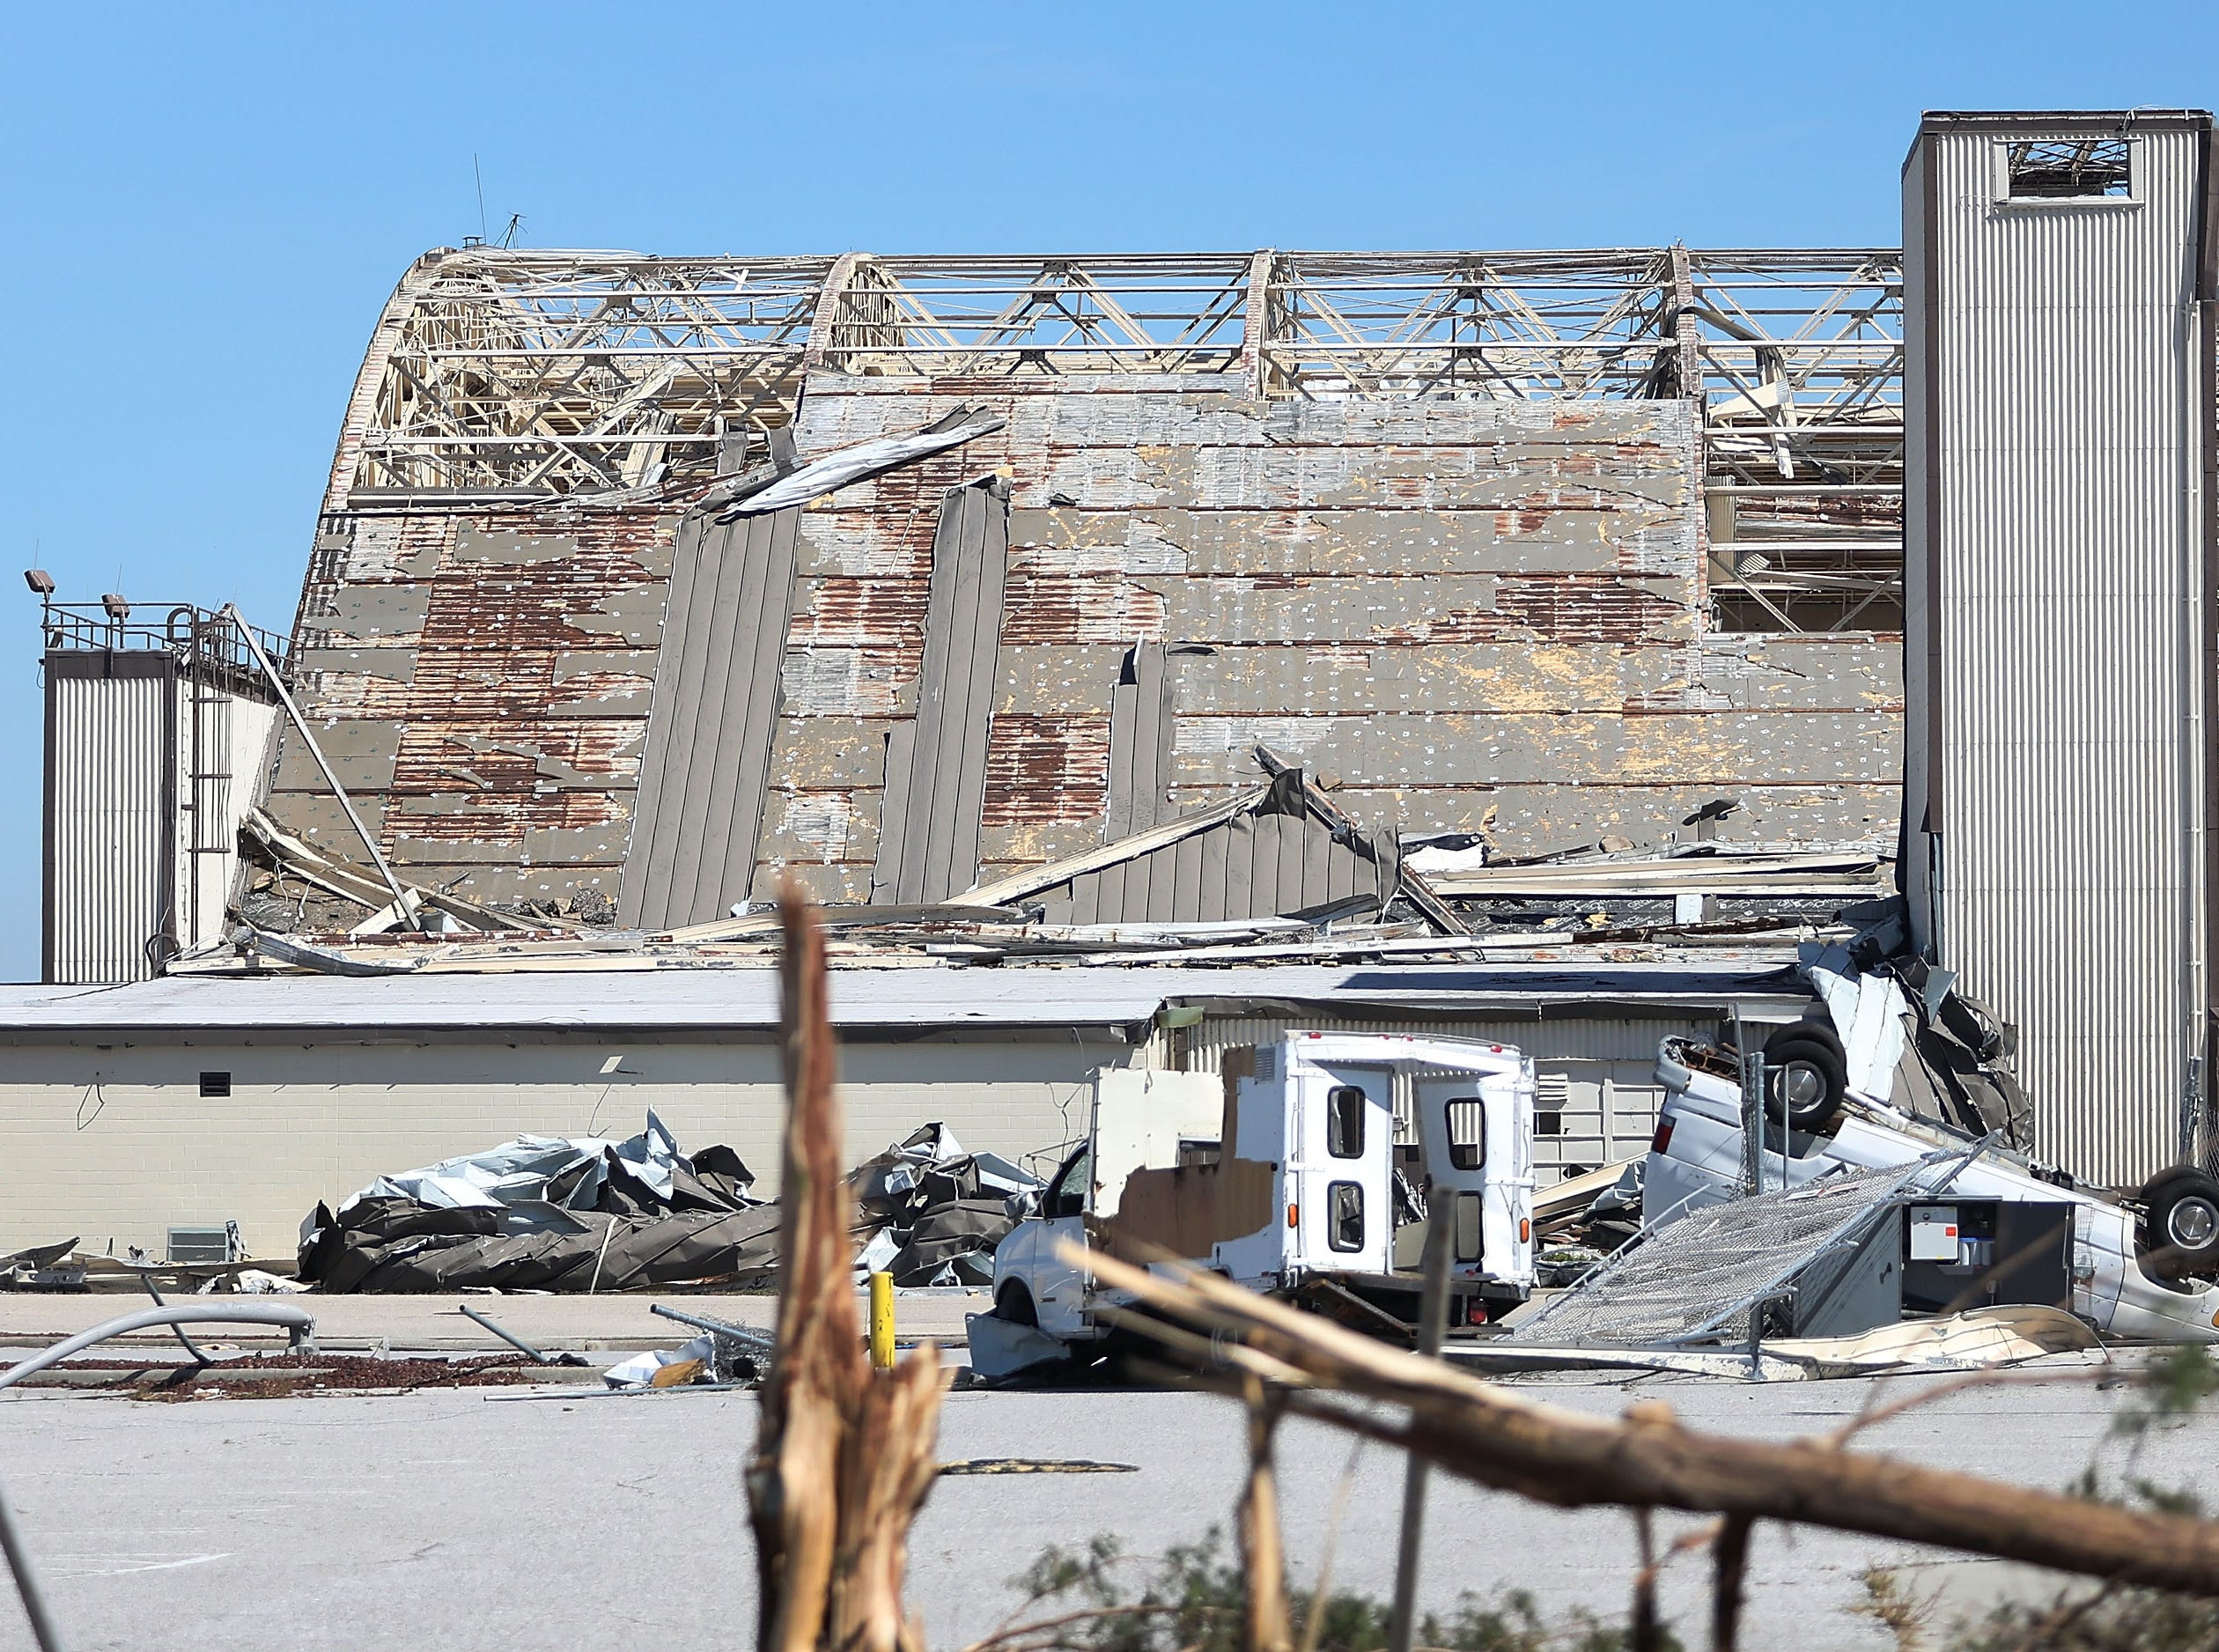 MEXICO BEACH, FL - OCTOBER 12:  A damaged airplane hanger is seen on the grounds of Tyndall Air Force Base  after Hurricane Michael passed through the area on October 12, 2018 in Mexico Beach, Florida. The hurricane hit the panhandle area with category 4 winds causing major damage.  (Photo by Joe Raedle/Getty Images)